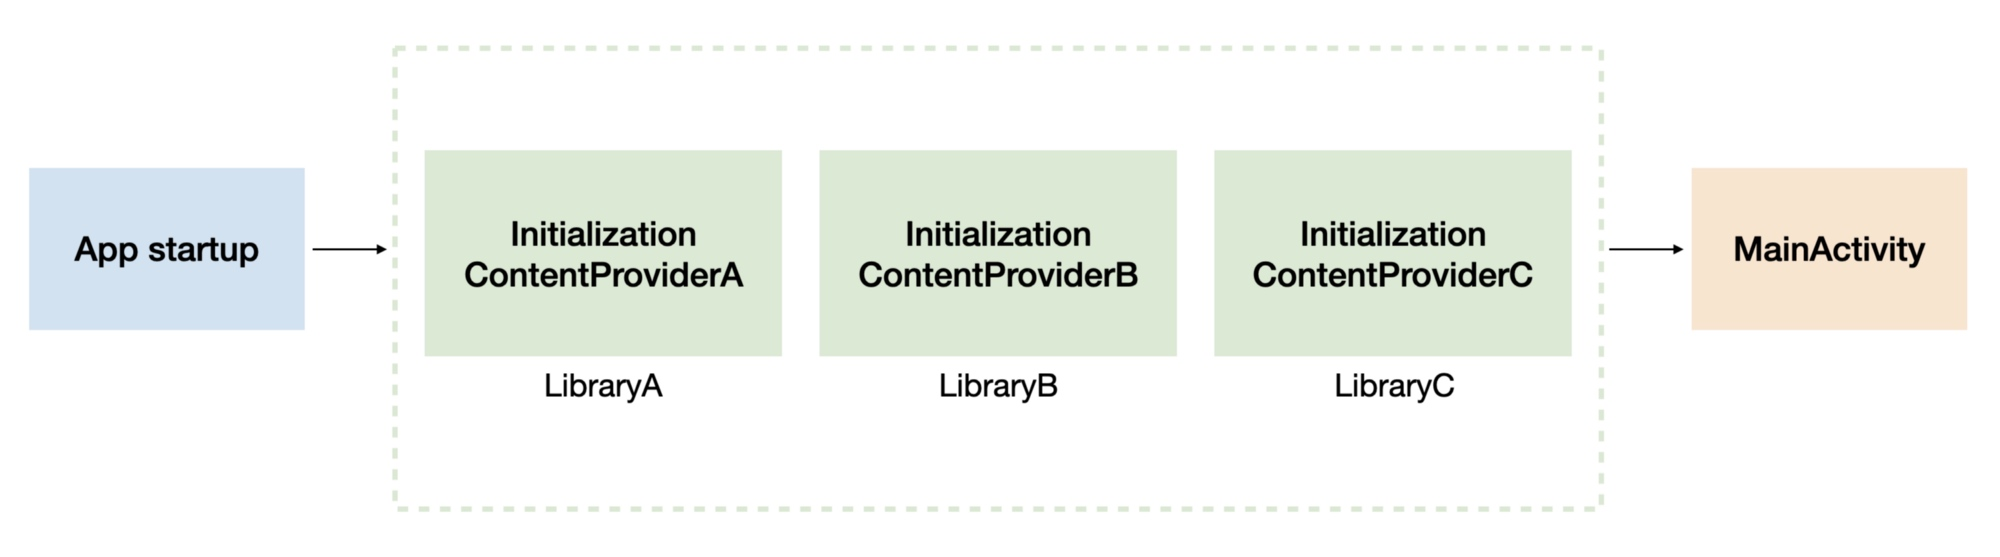 LibraryA, LibraryB, and LibraryC initialized using their own ContentProviders